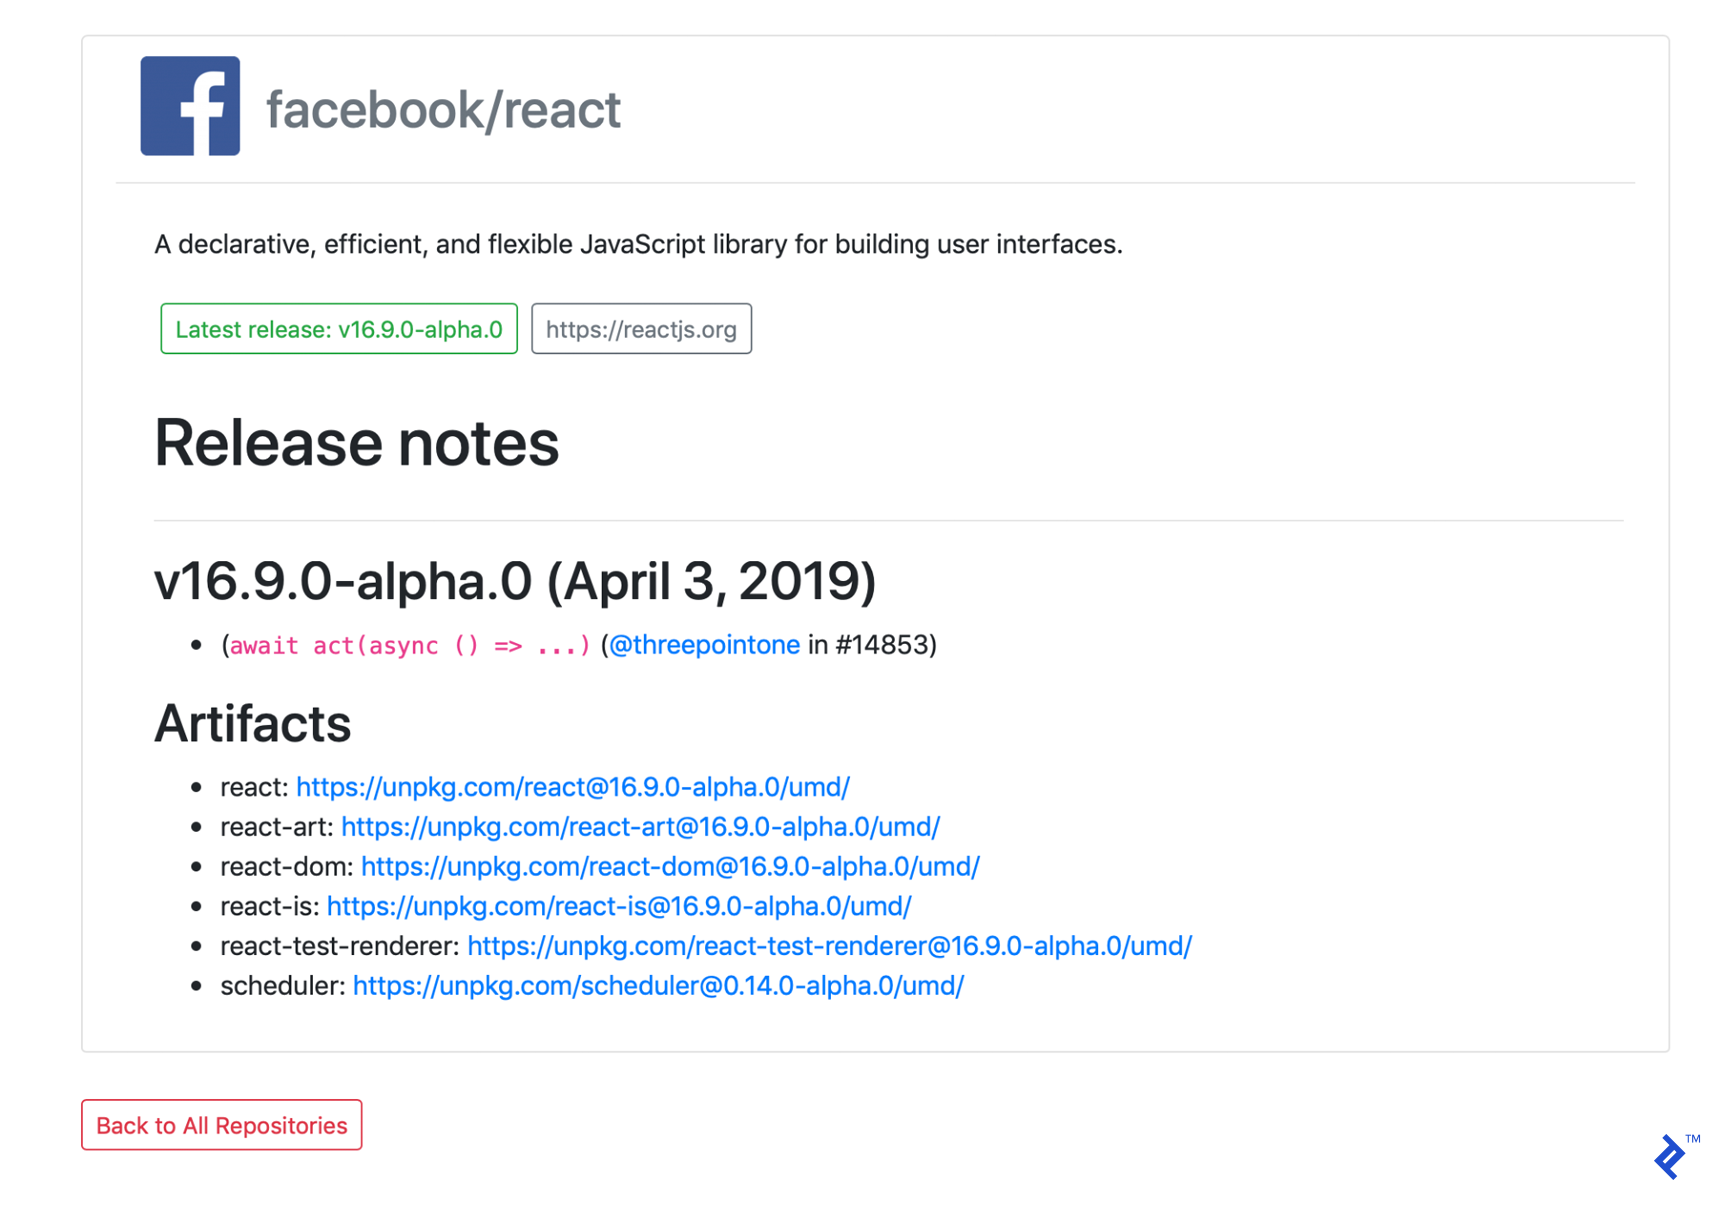 A sample repository detail page, showing more information about the facebook/react GitHub repo